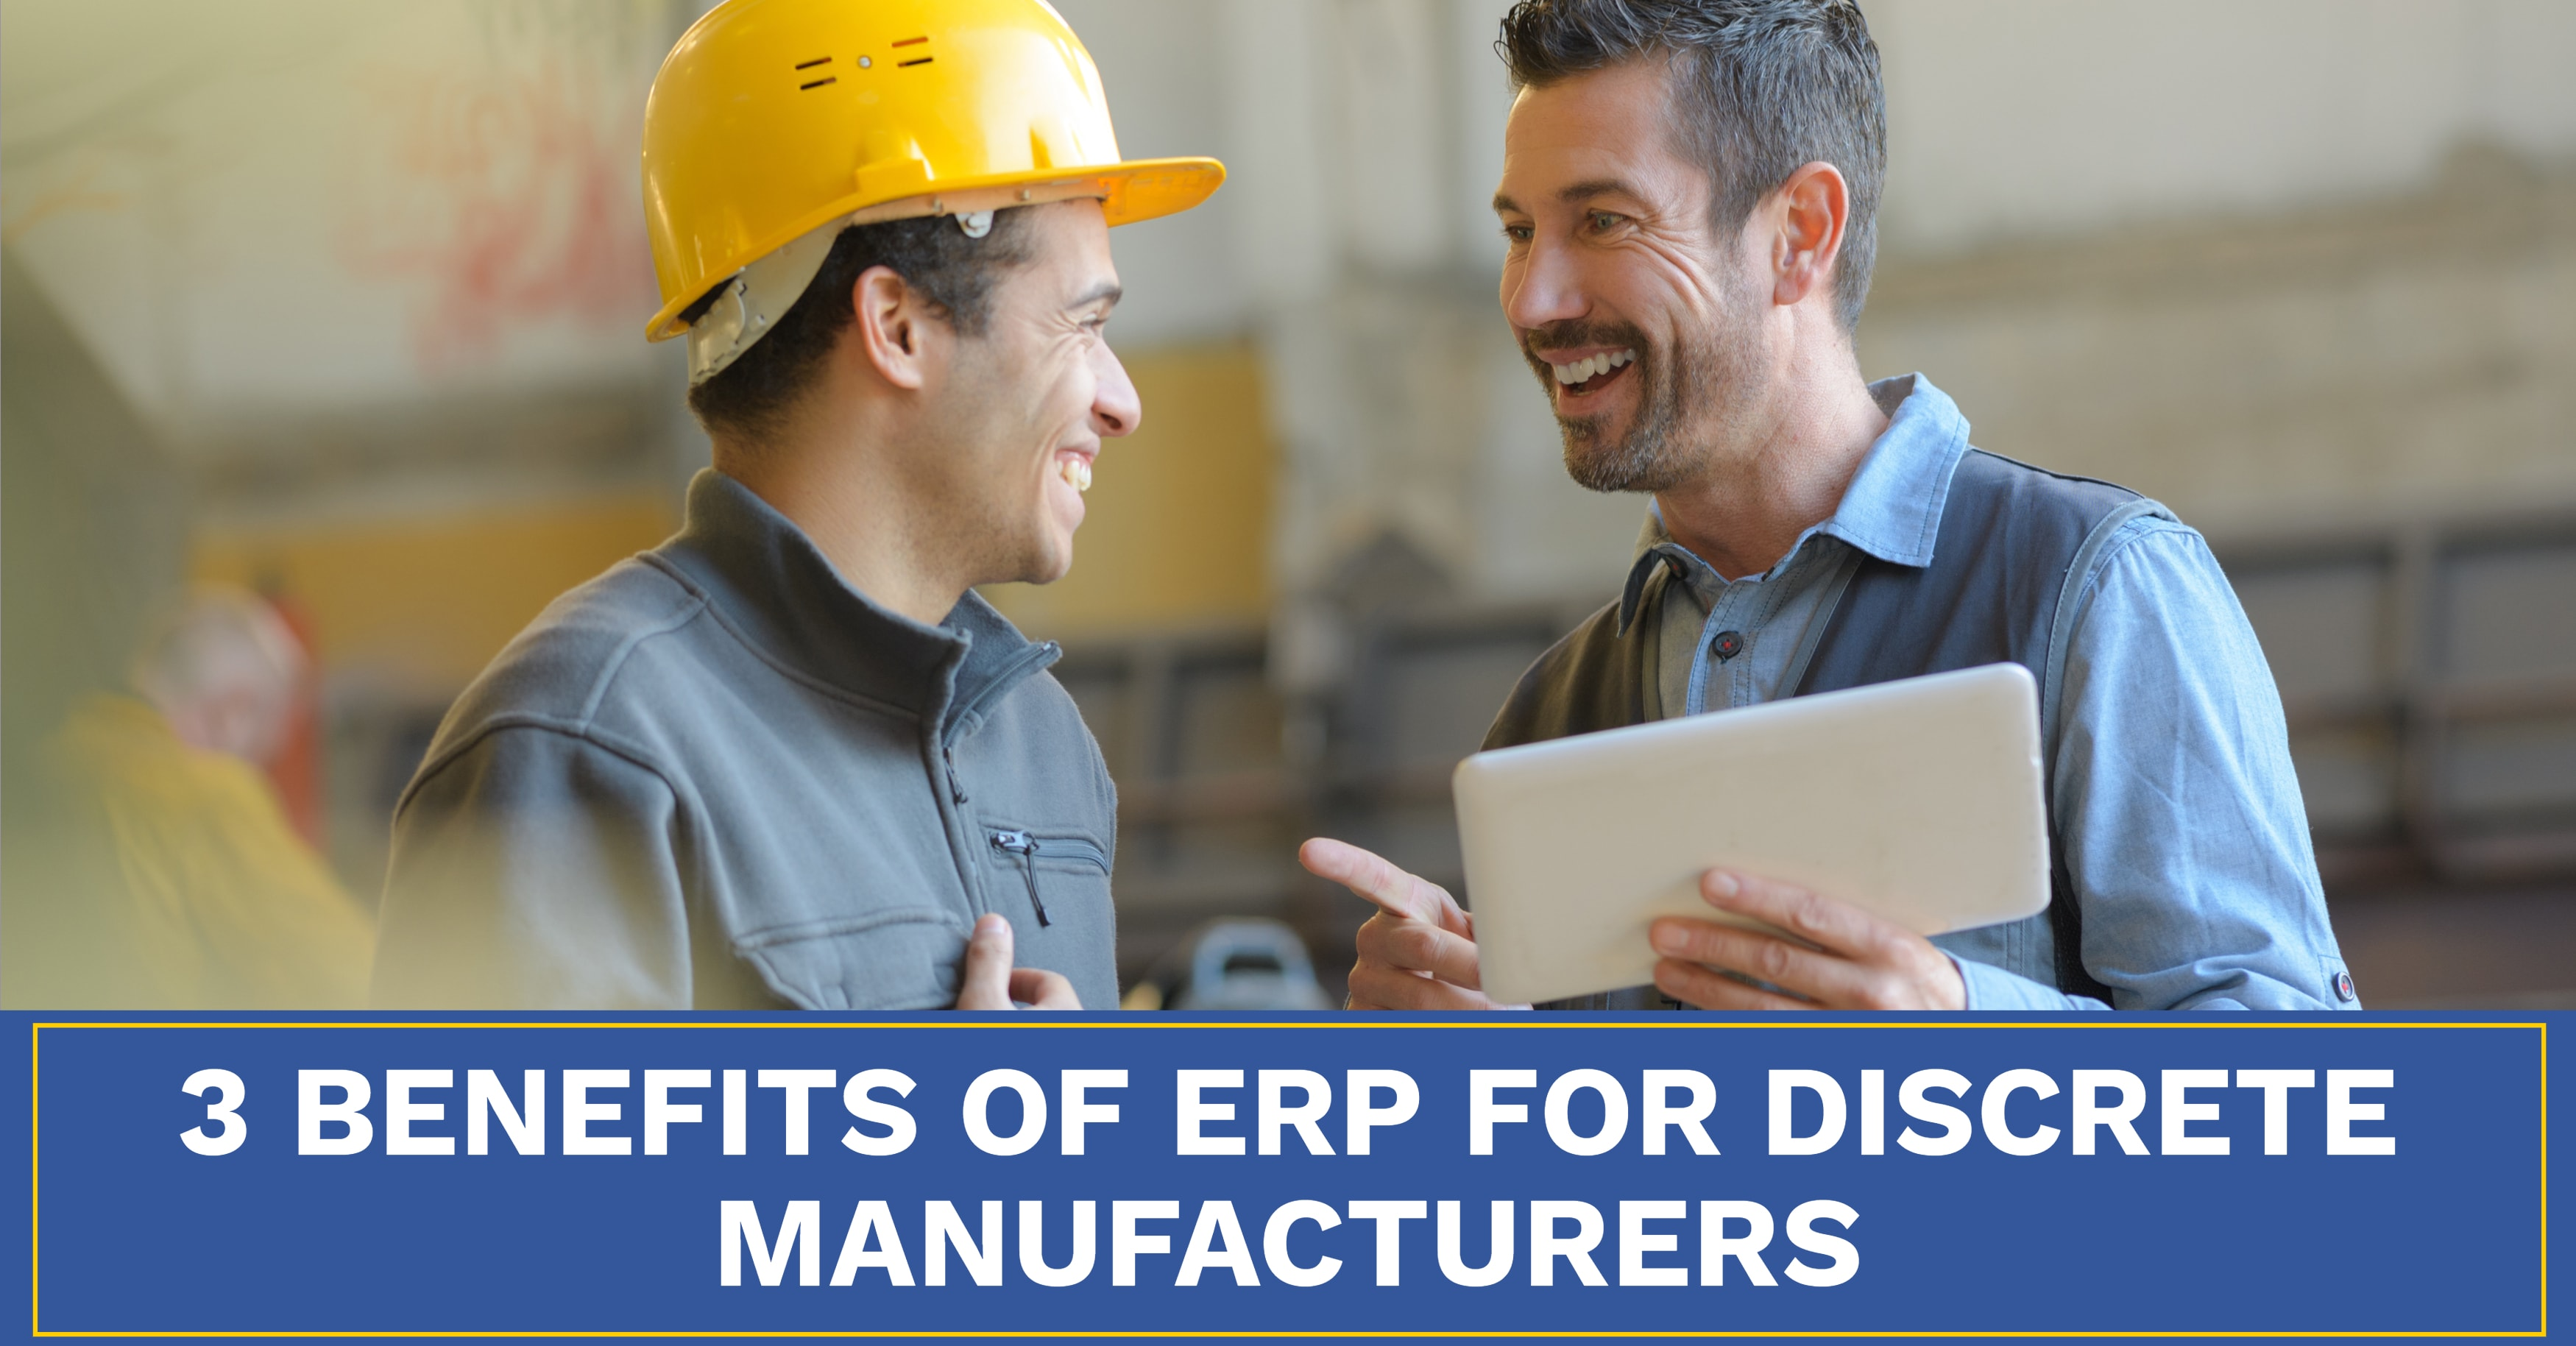 3 Benefits Discrete Manufacturers Can Expect From ERP